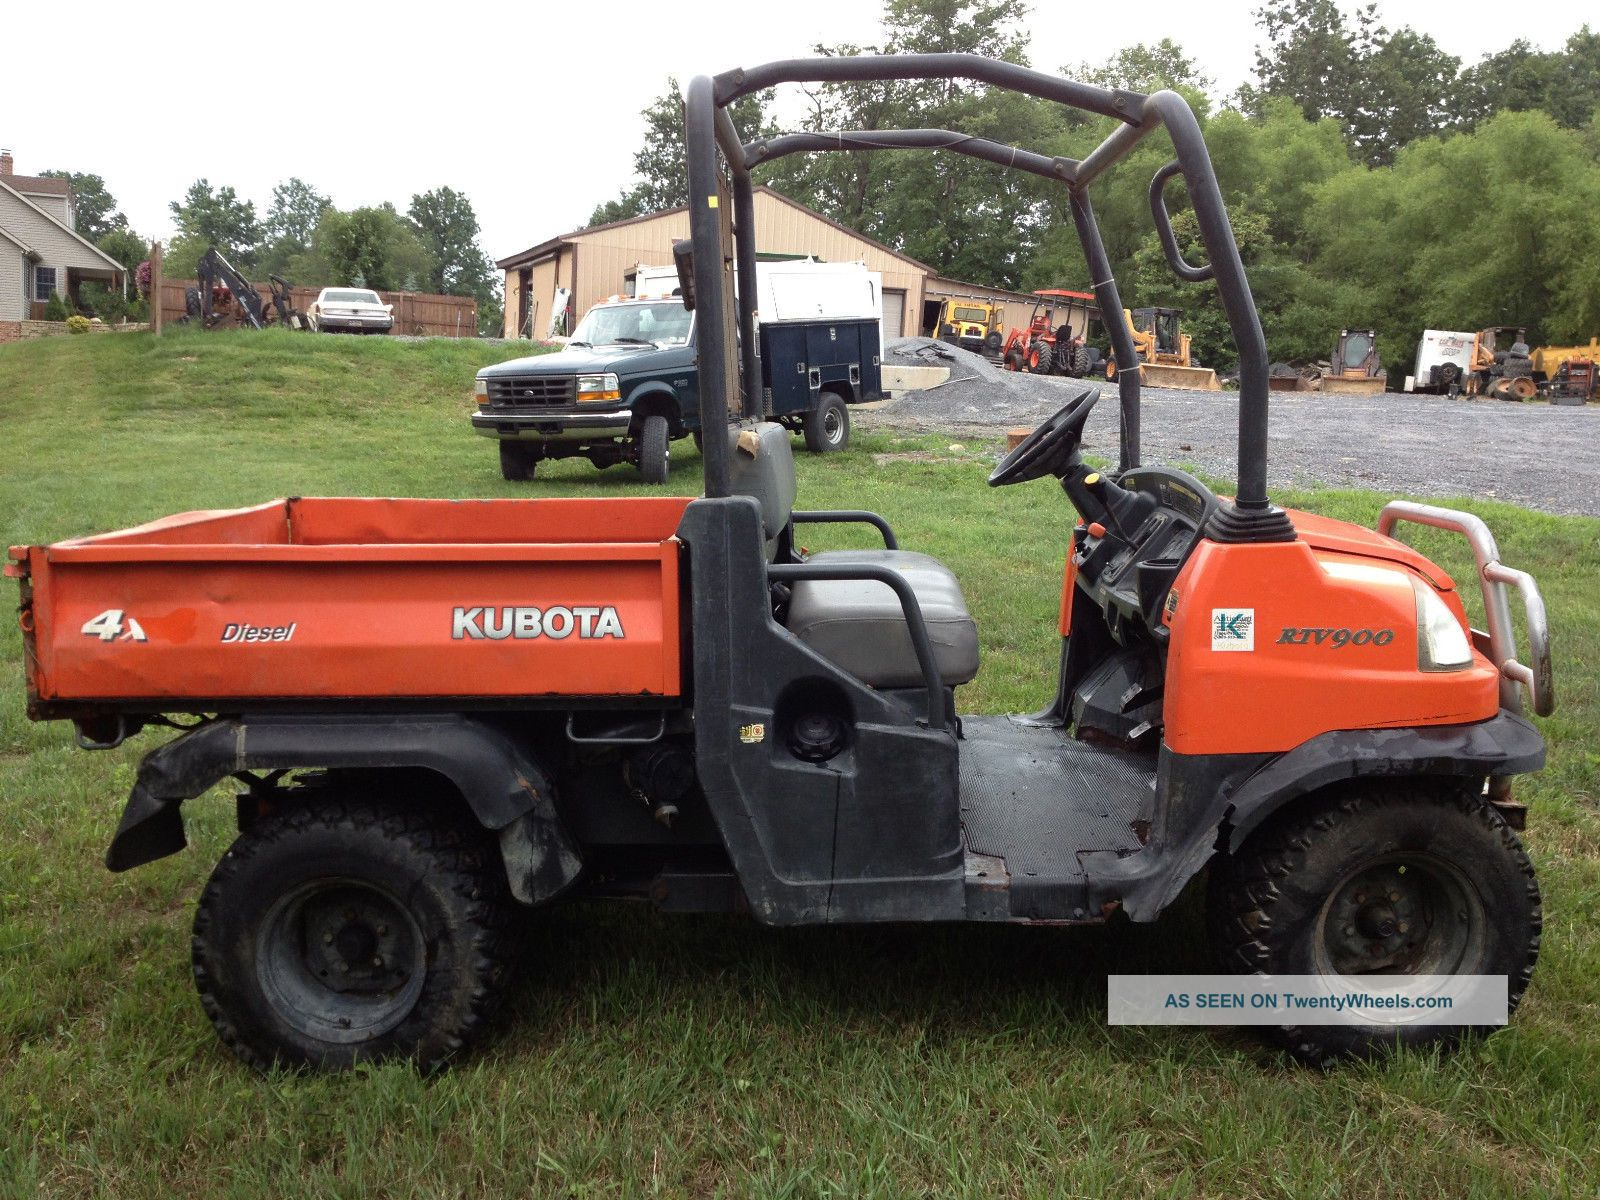 1000lbs Atv Utility Cart Garden Trailer 2 Wheel Golf Cart 17 Cu Tipper Dump Cart Trailers For Sale Pictures 60433539139 together with 15431 Kubota 900 rtv diesel 4x4 utv atv better than a golf cart cheap rates besides Watch together with 301037556318048461 furthermore S3. on golf cart dump trailers